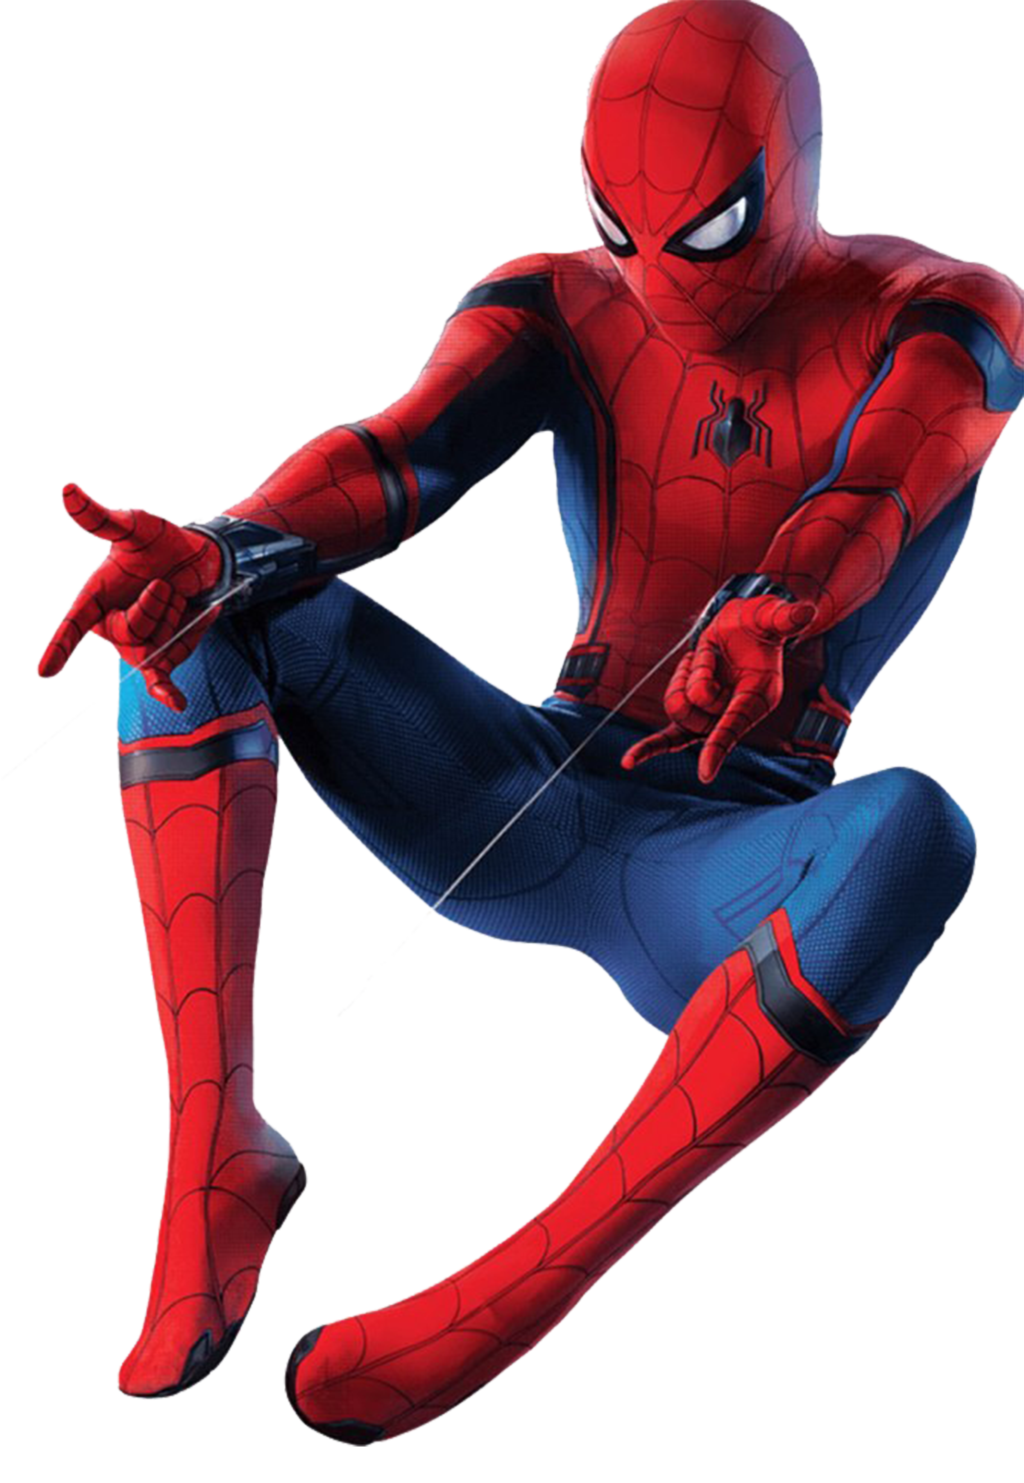 Download Mcu Spiderman Png Image For Free